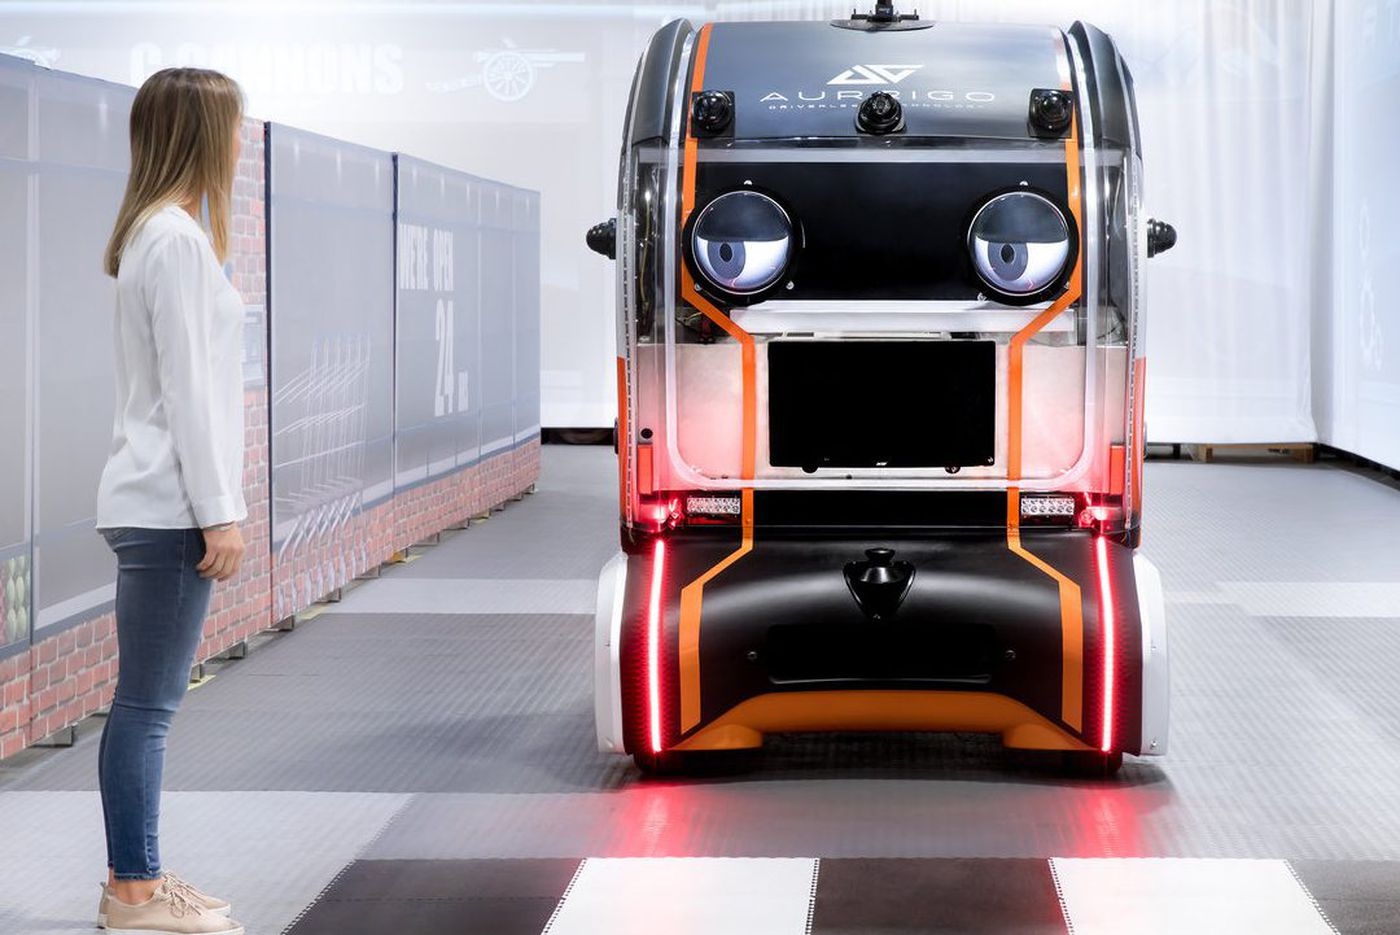 To earn trust for autonomous vehicles, company gives them 'virtual eyes'